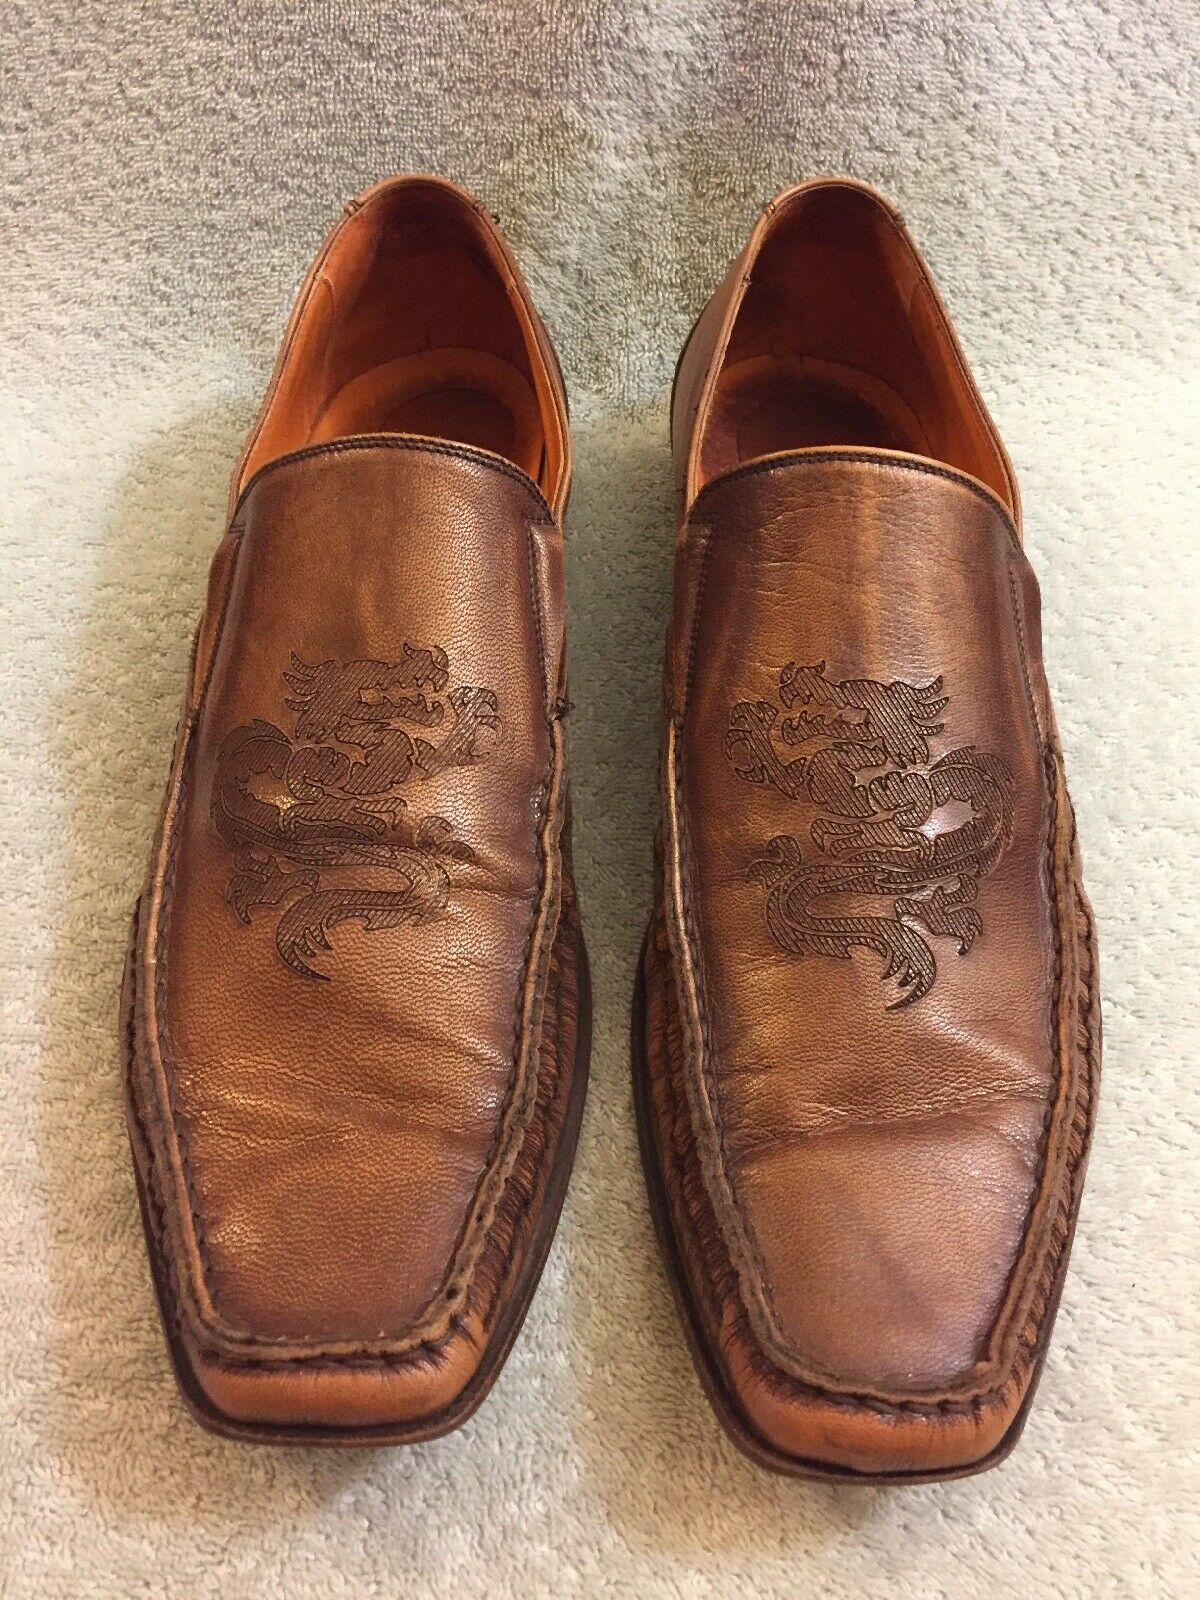 Mark Nason Dragon Stitched Toe Brown Leather shoes Made In  67235 Sz 10.5